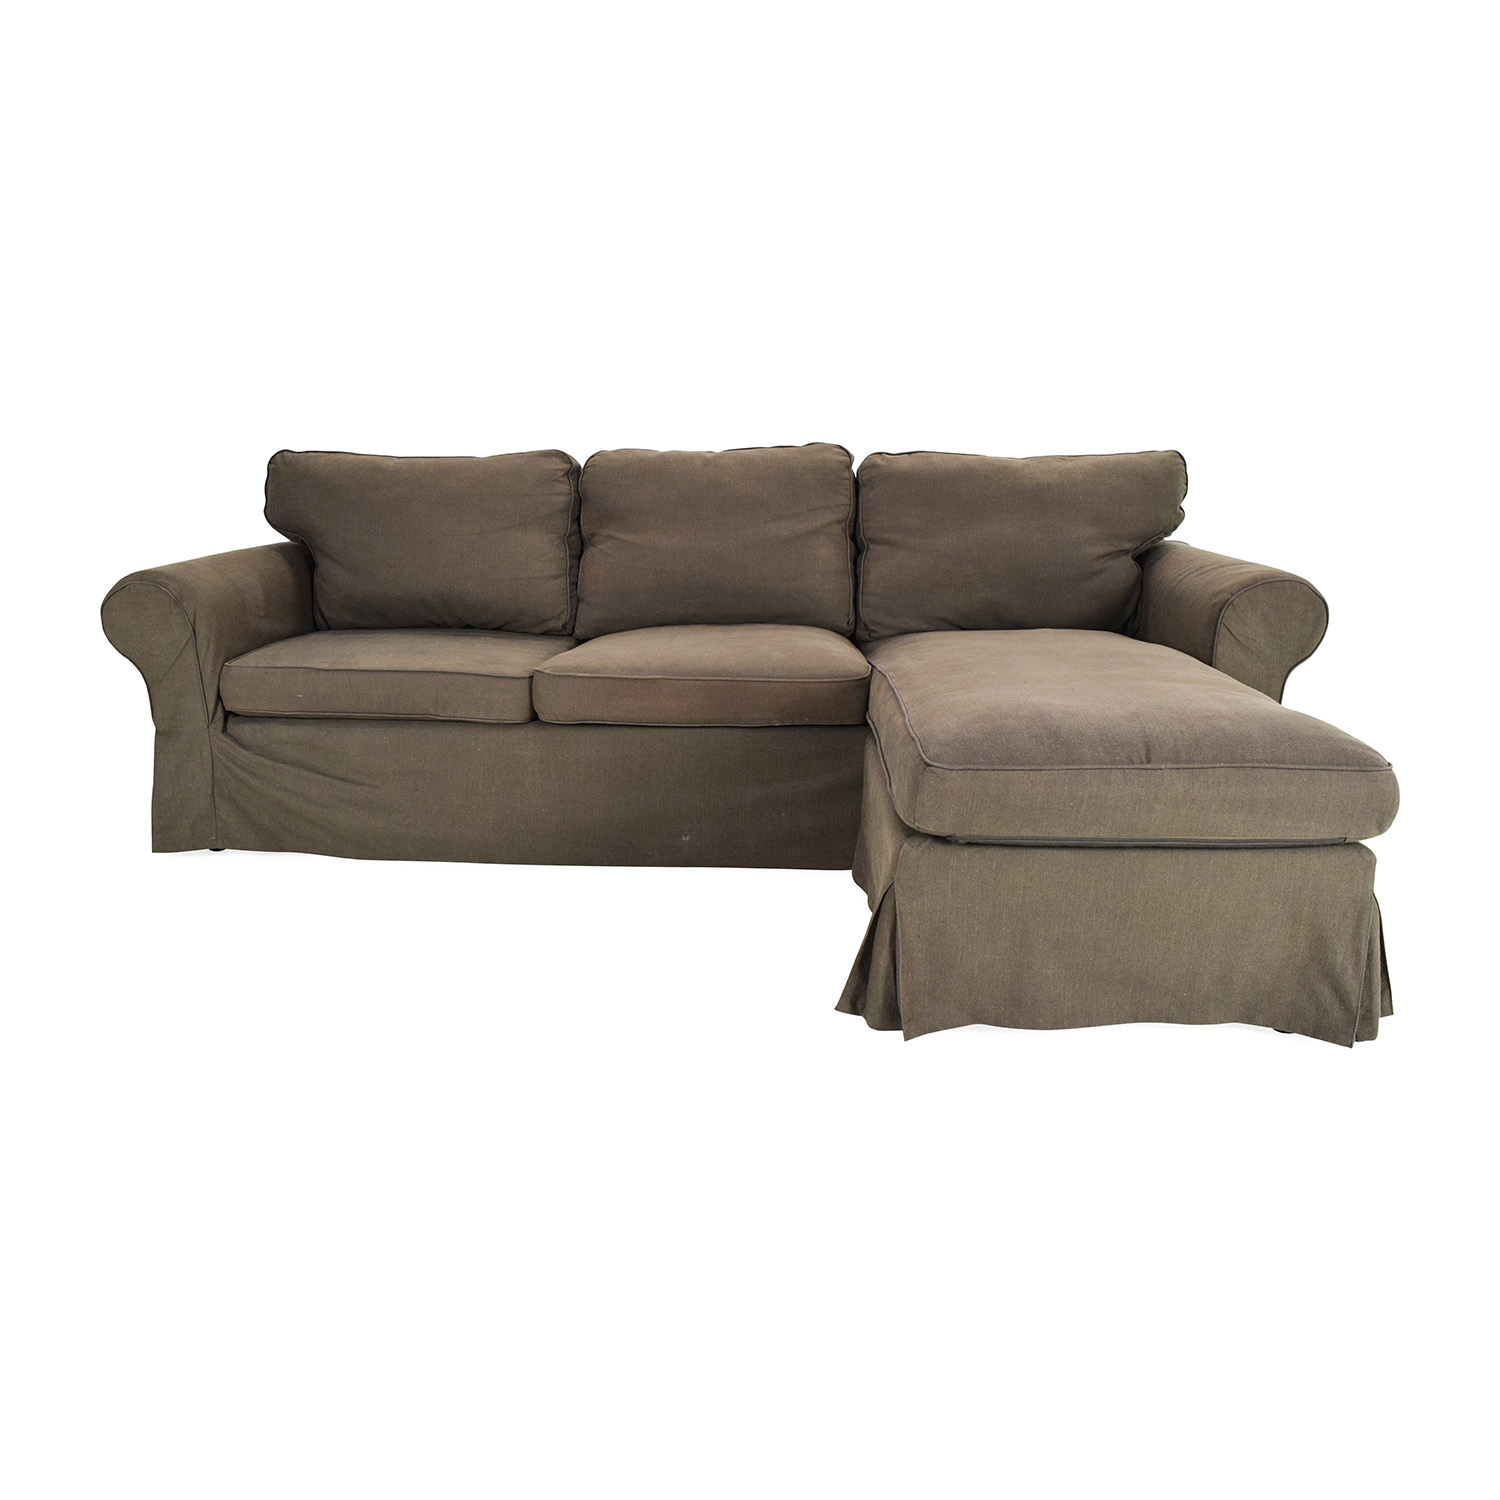 Conforama Sofa Speedway 49 Off Ikea Ektorp Brown Couch With Chaise Sofas